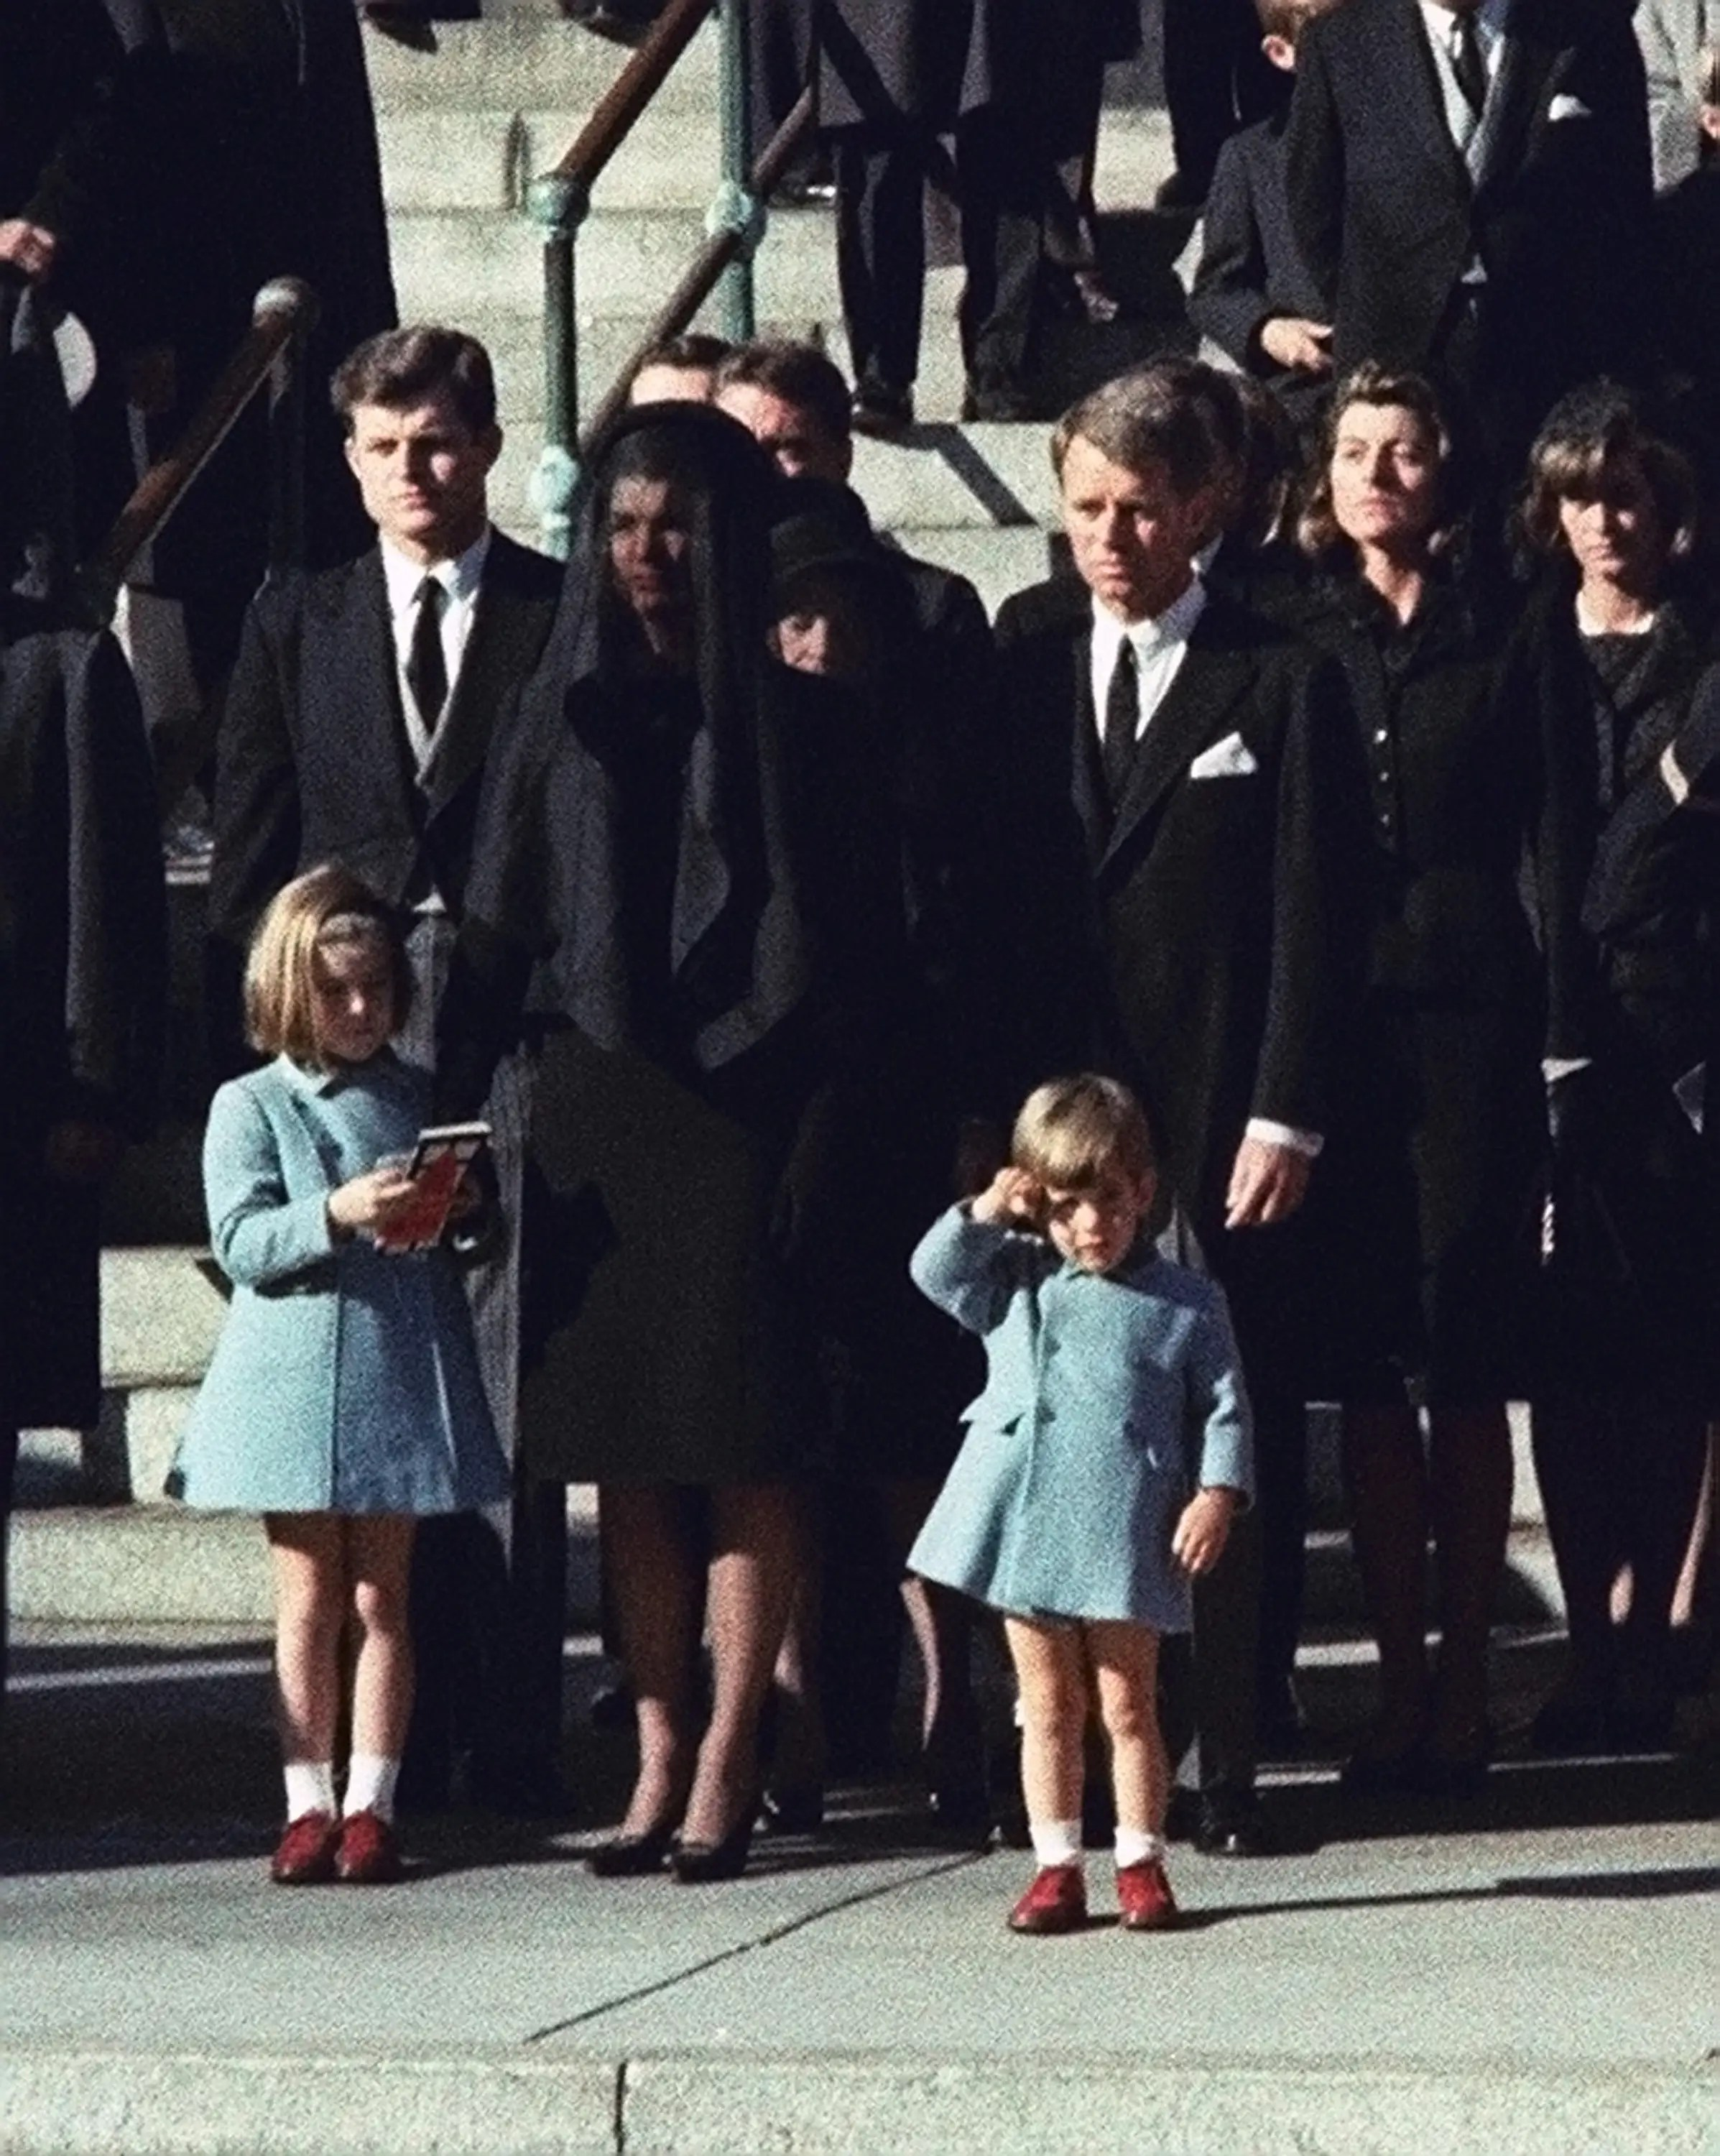 JFK Jr. Salute Father's Funeral